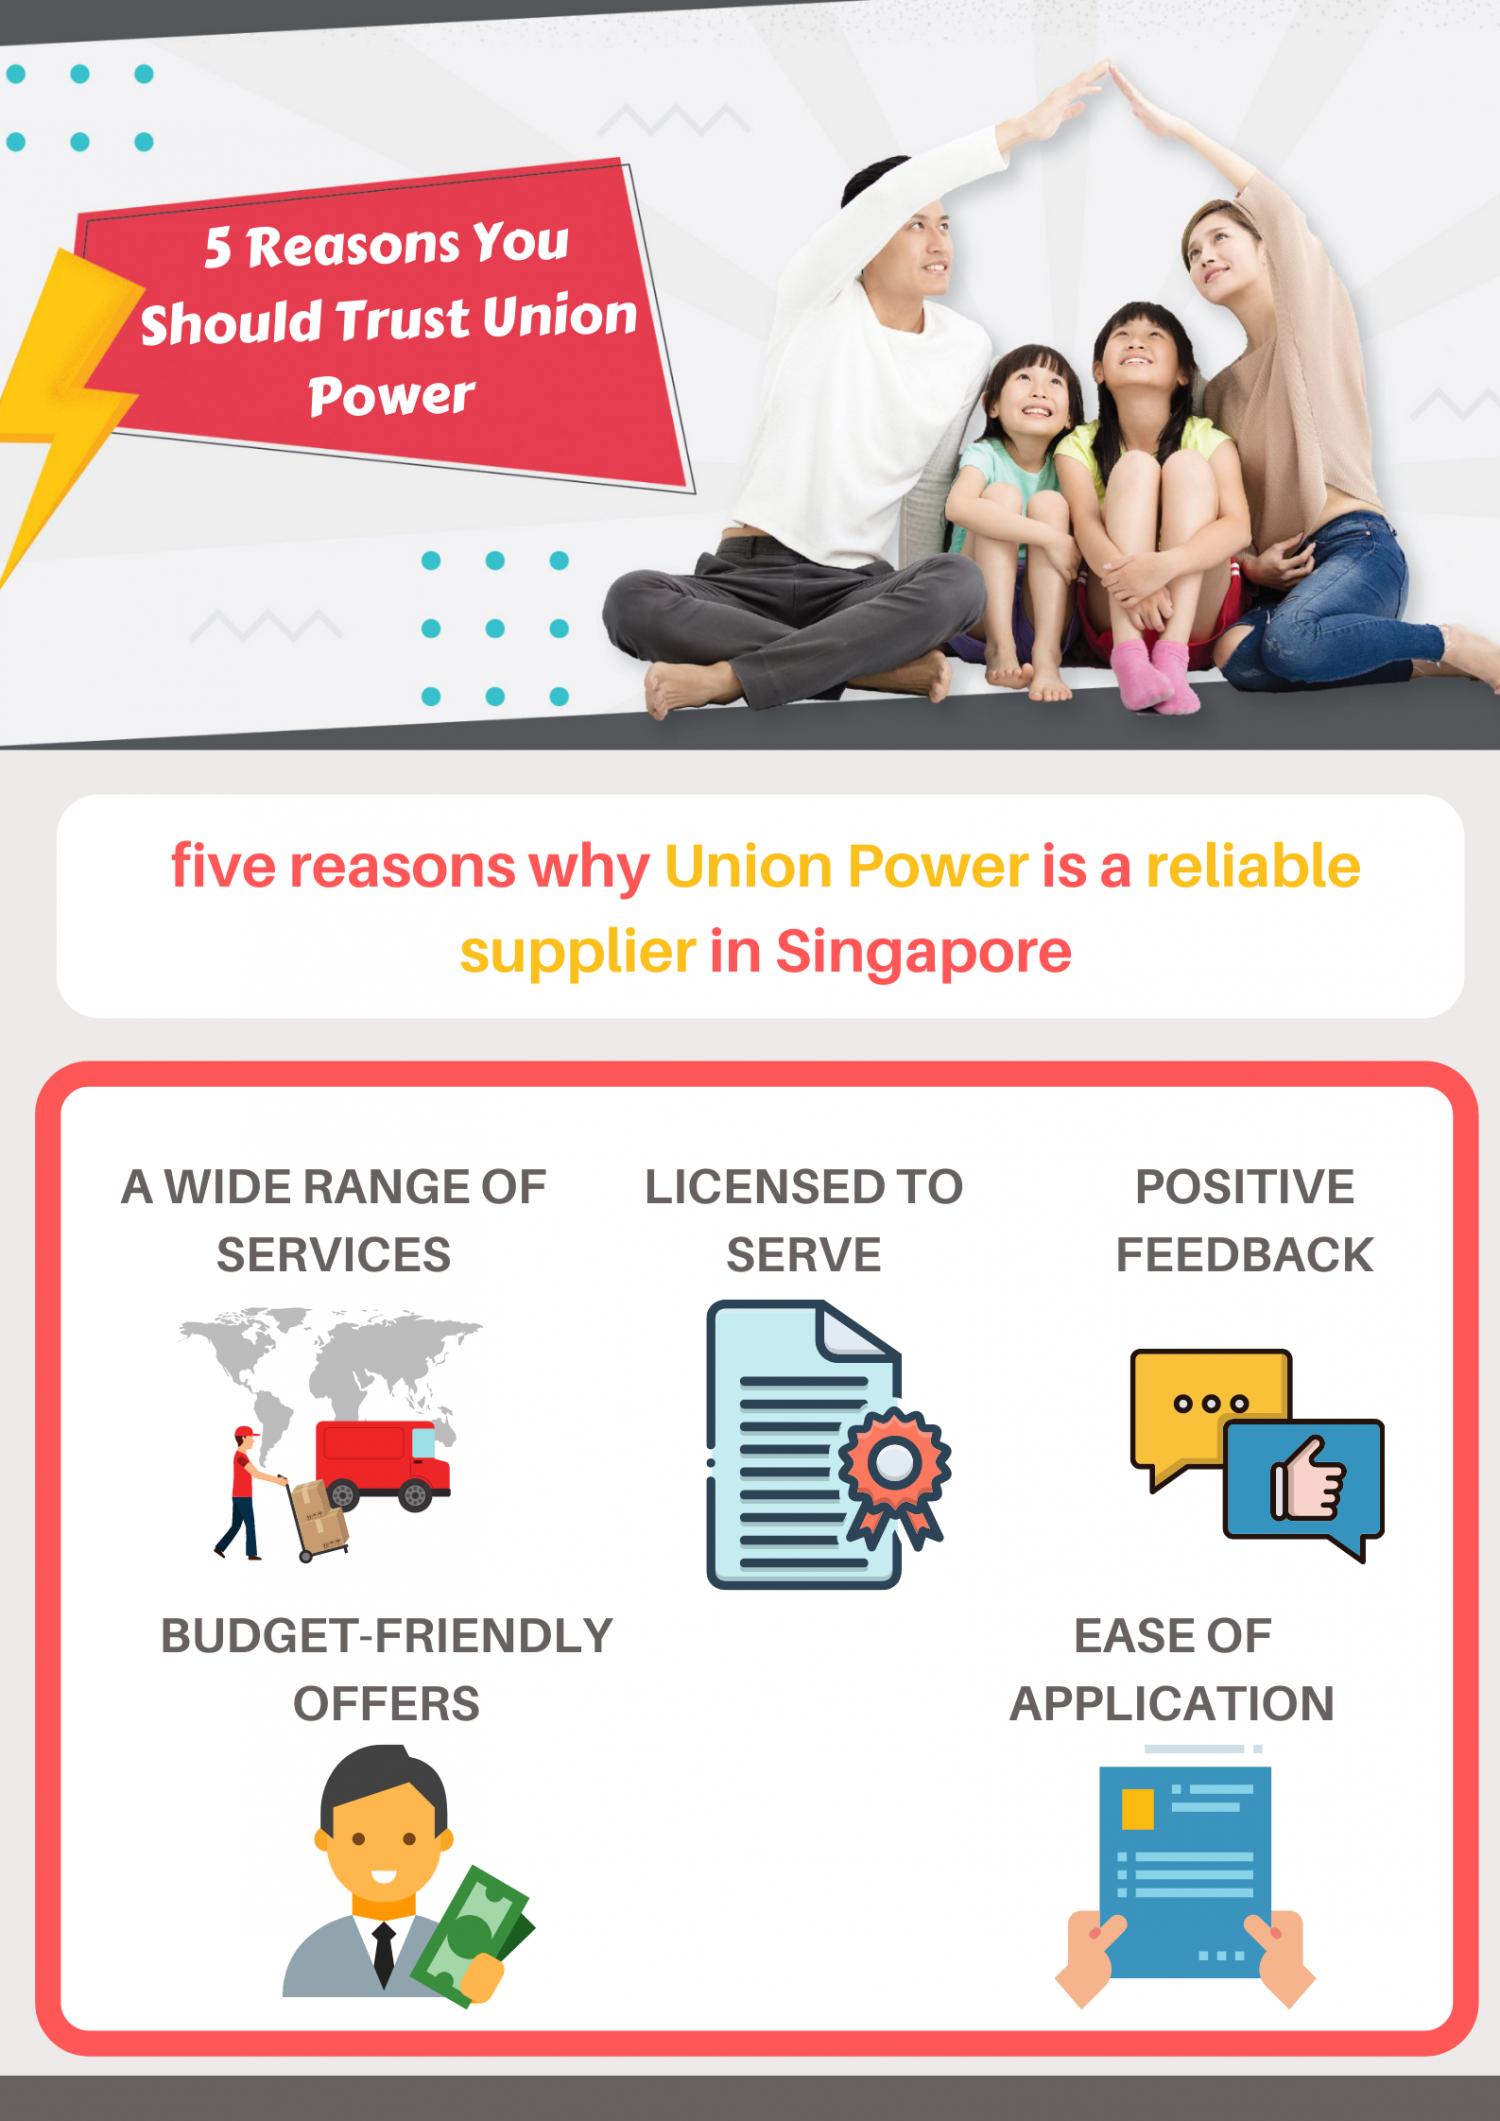 5 Reasons You Should Trust Union Power Infographic